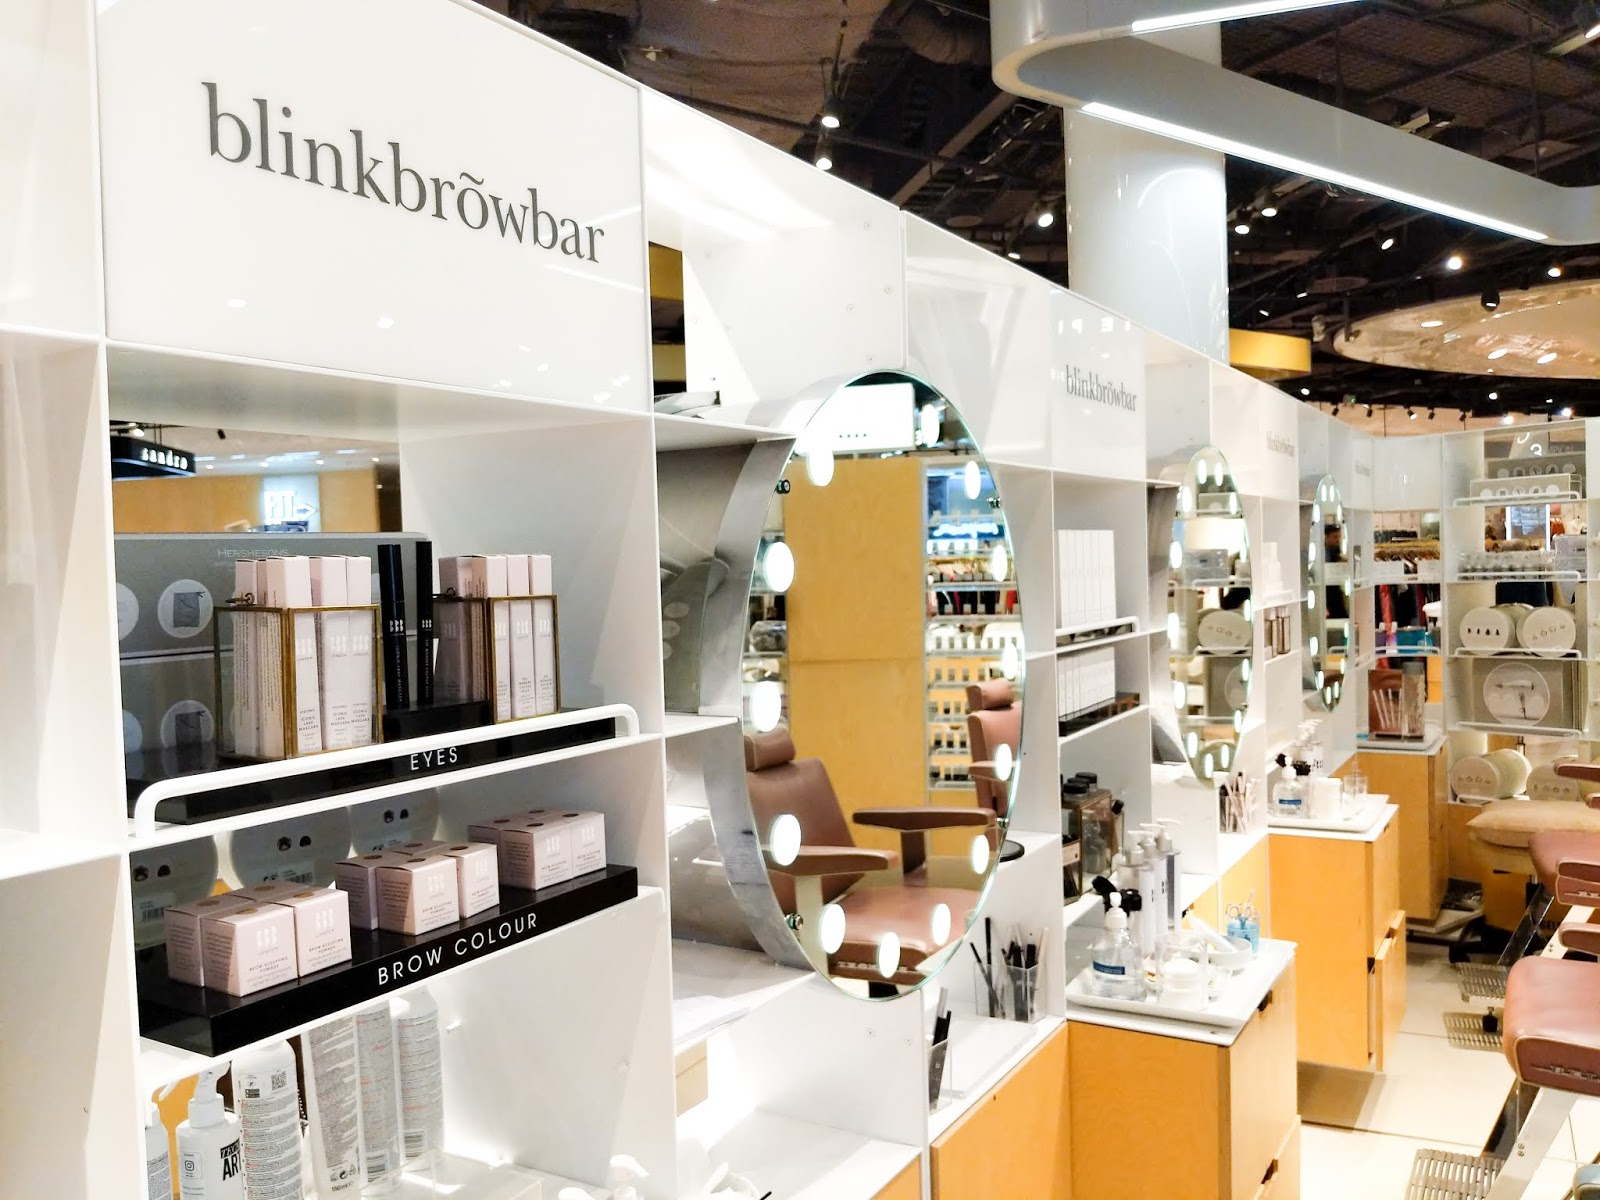 An image of Blink Brow Bar at Selfridges Birmingham Bullring